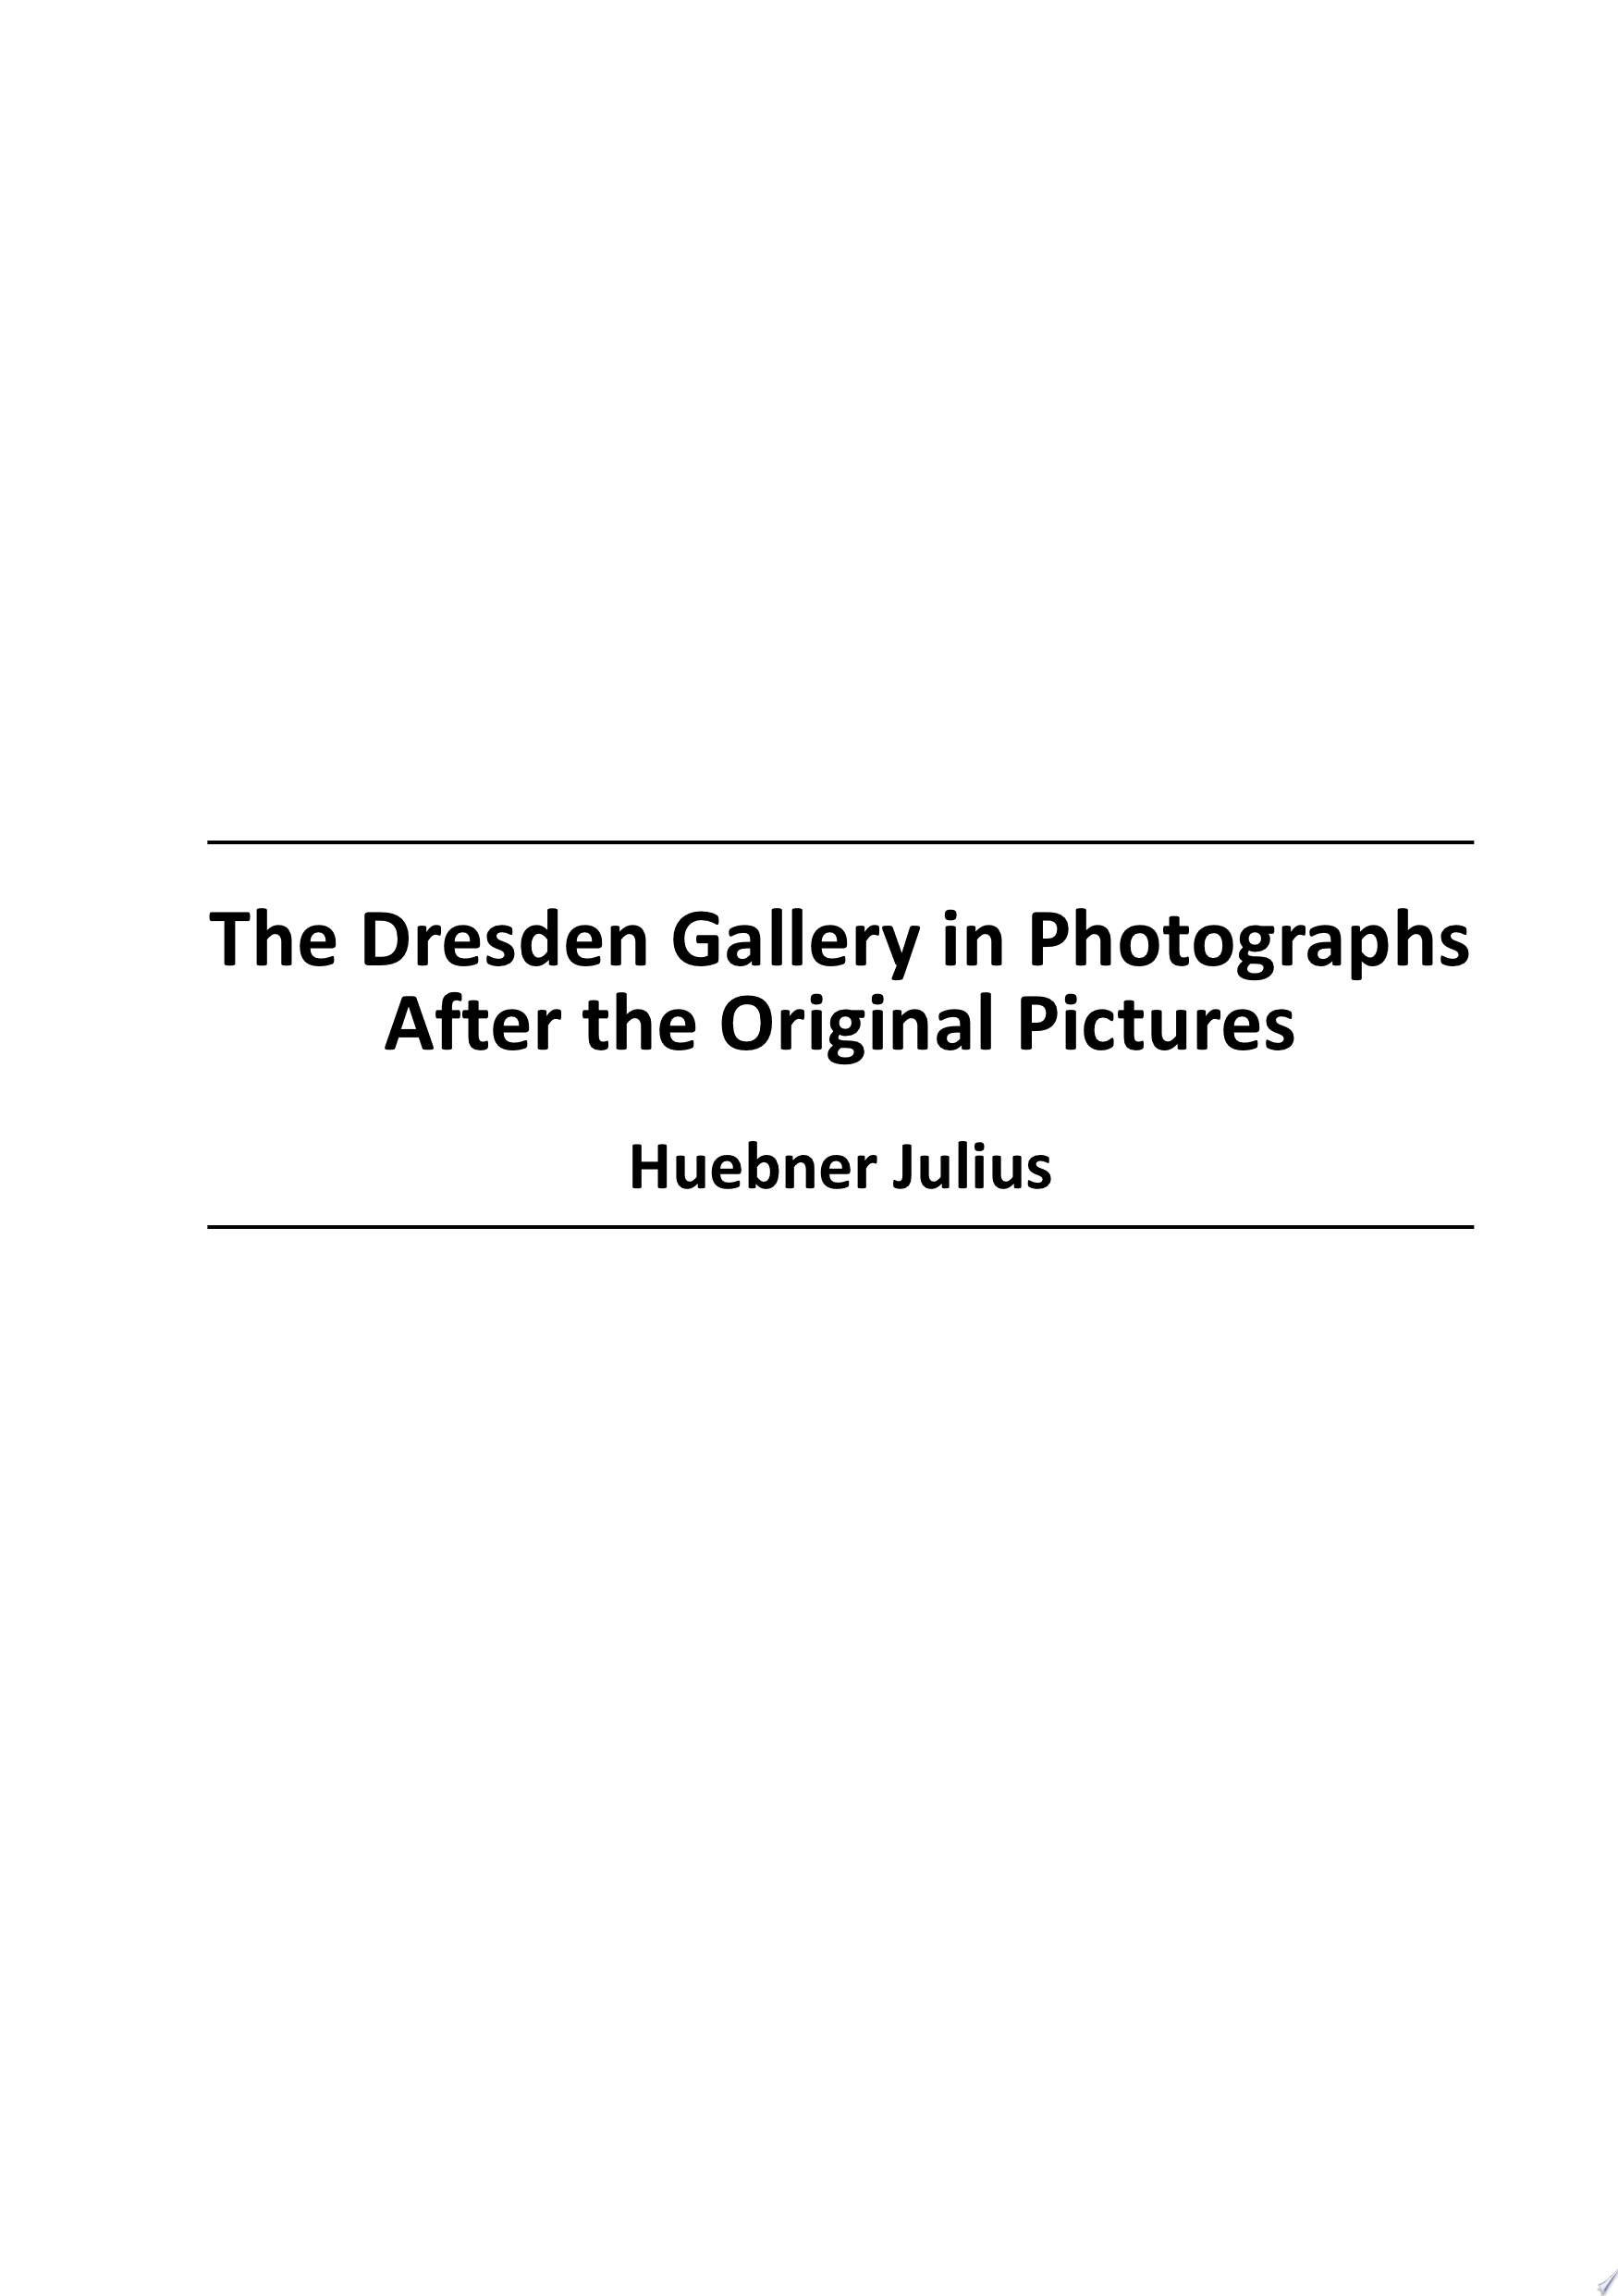 The Dresden Gallery in Photographs After the Original Pictures